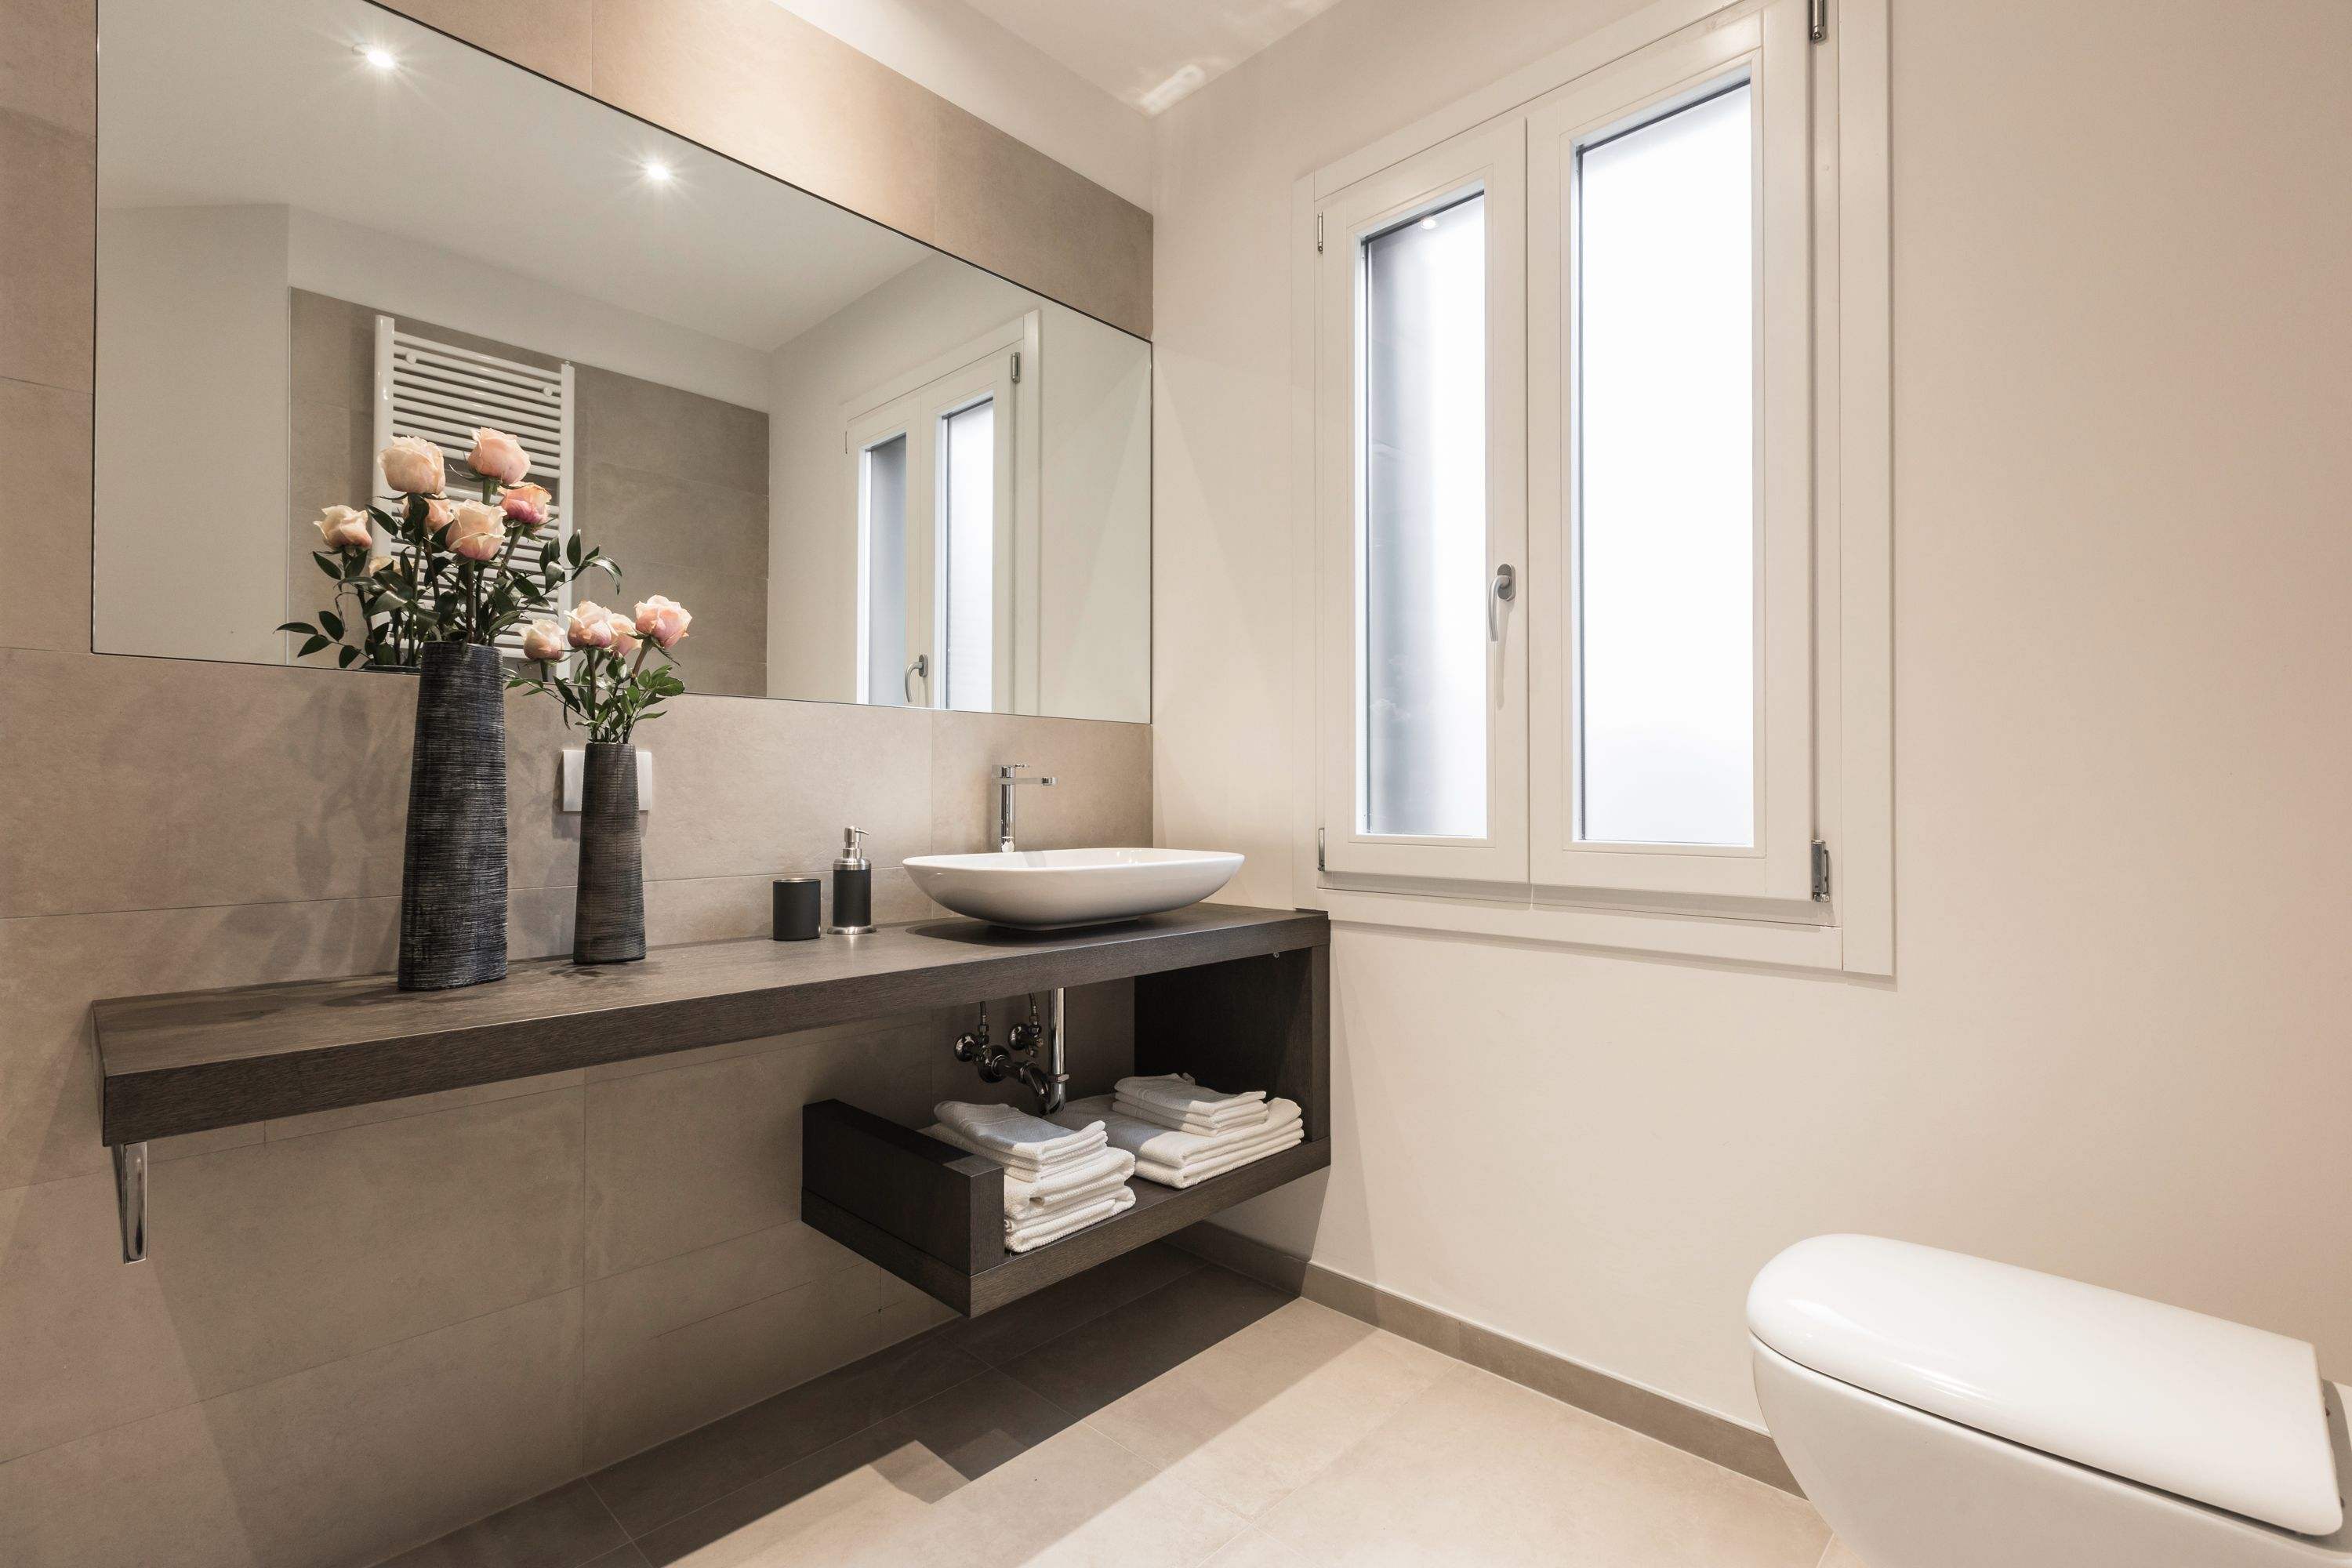 the main bathroom is large, stylish and bright...